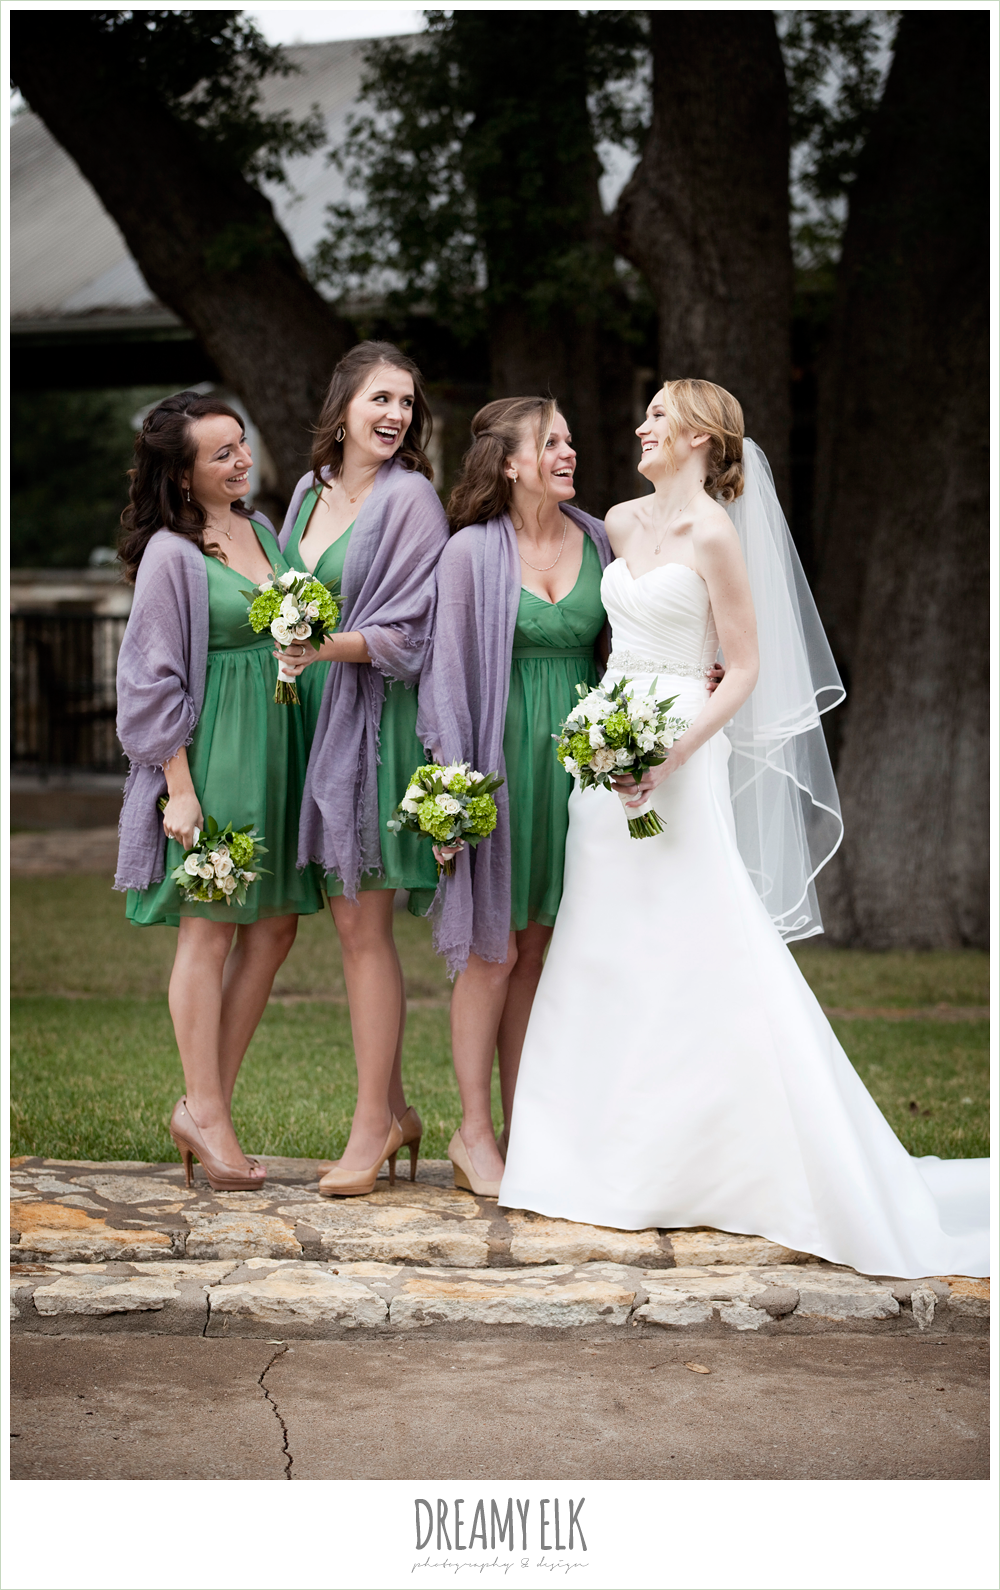 short green bridesmaids dresses, purple shawls, winter vineyard wedding, dreamy elk photography and design